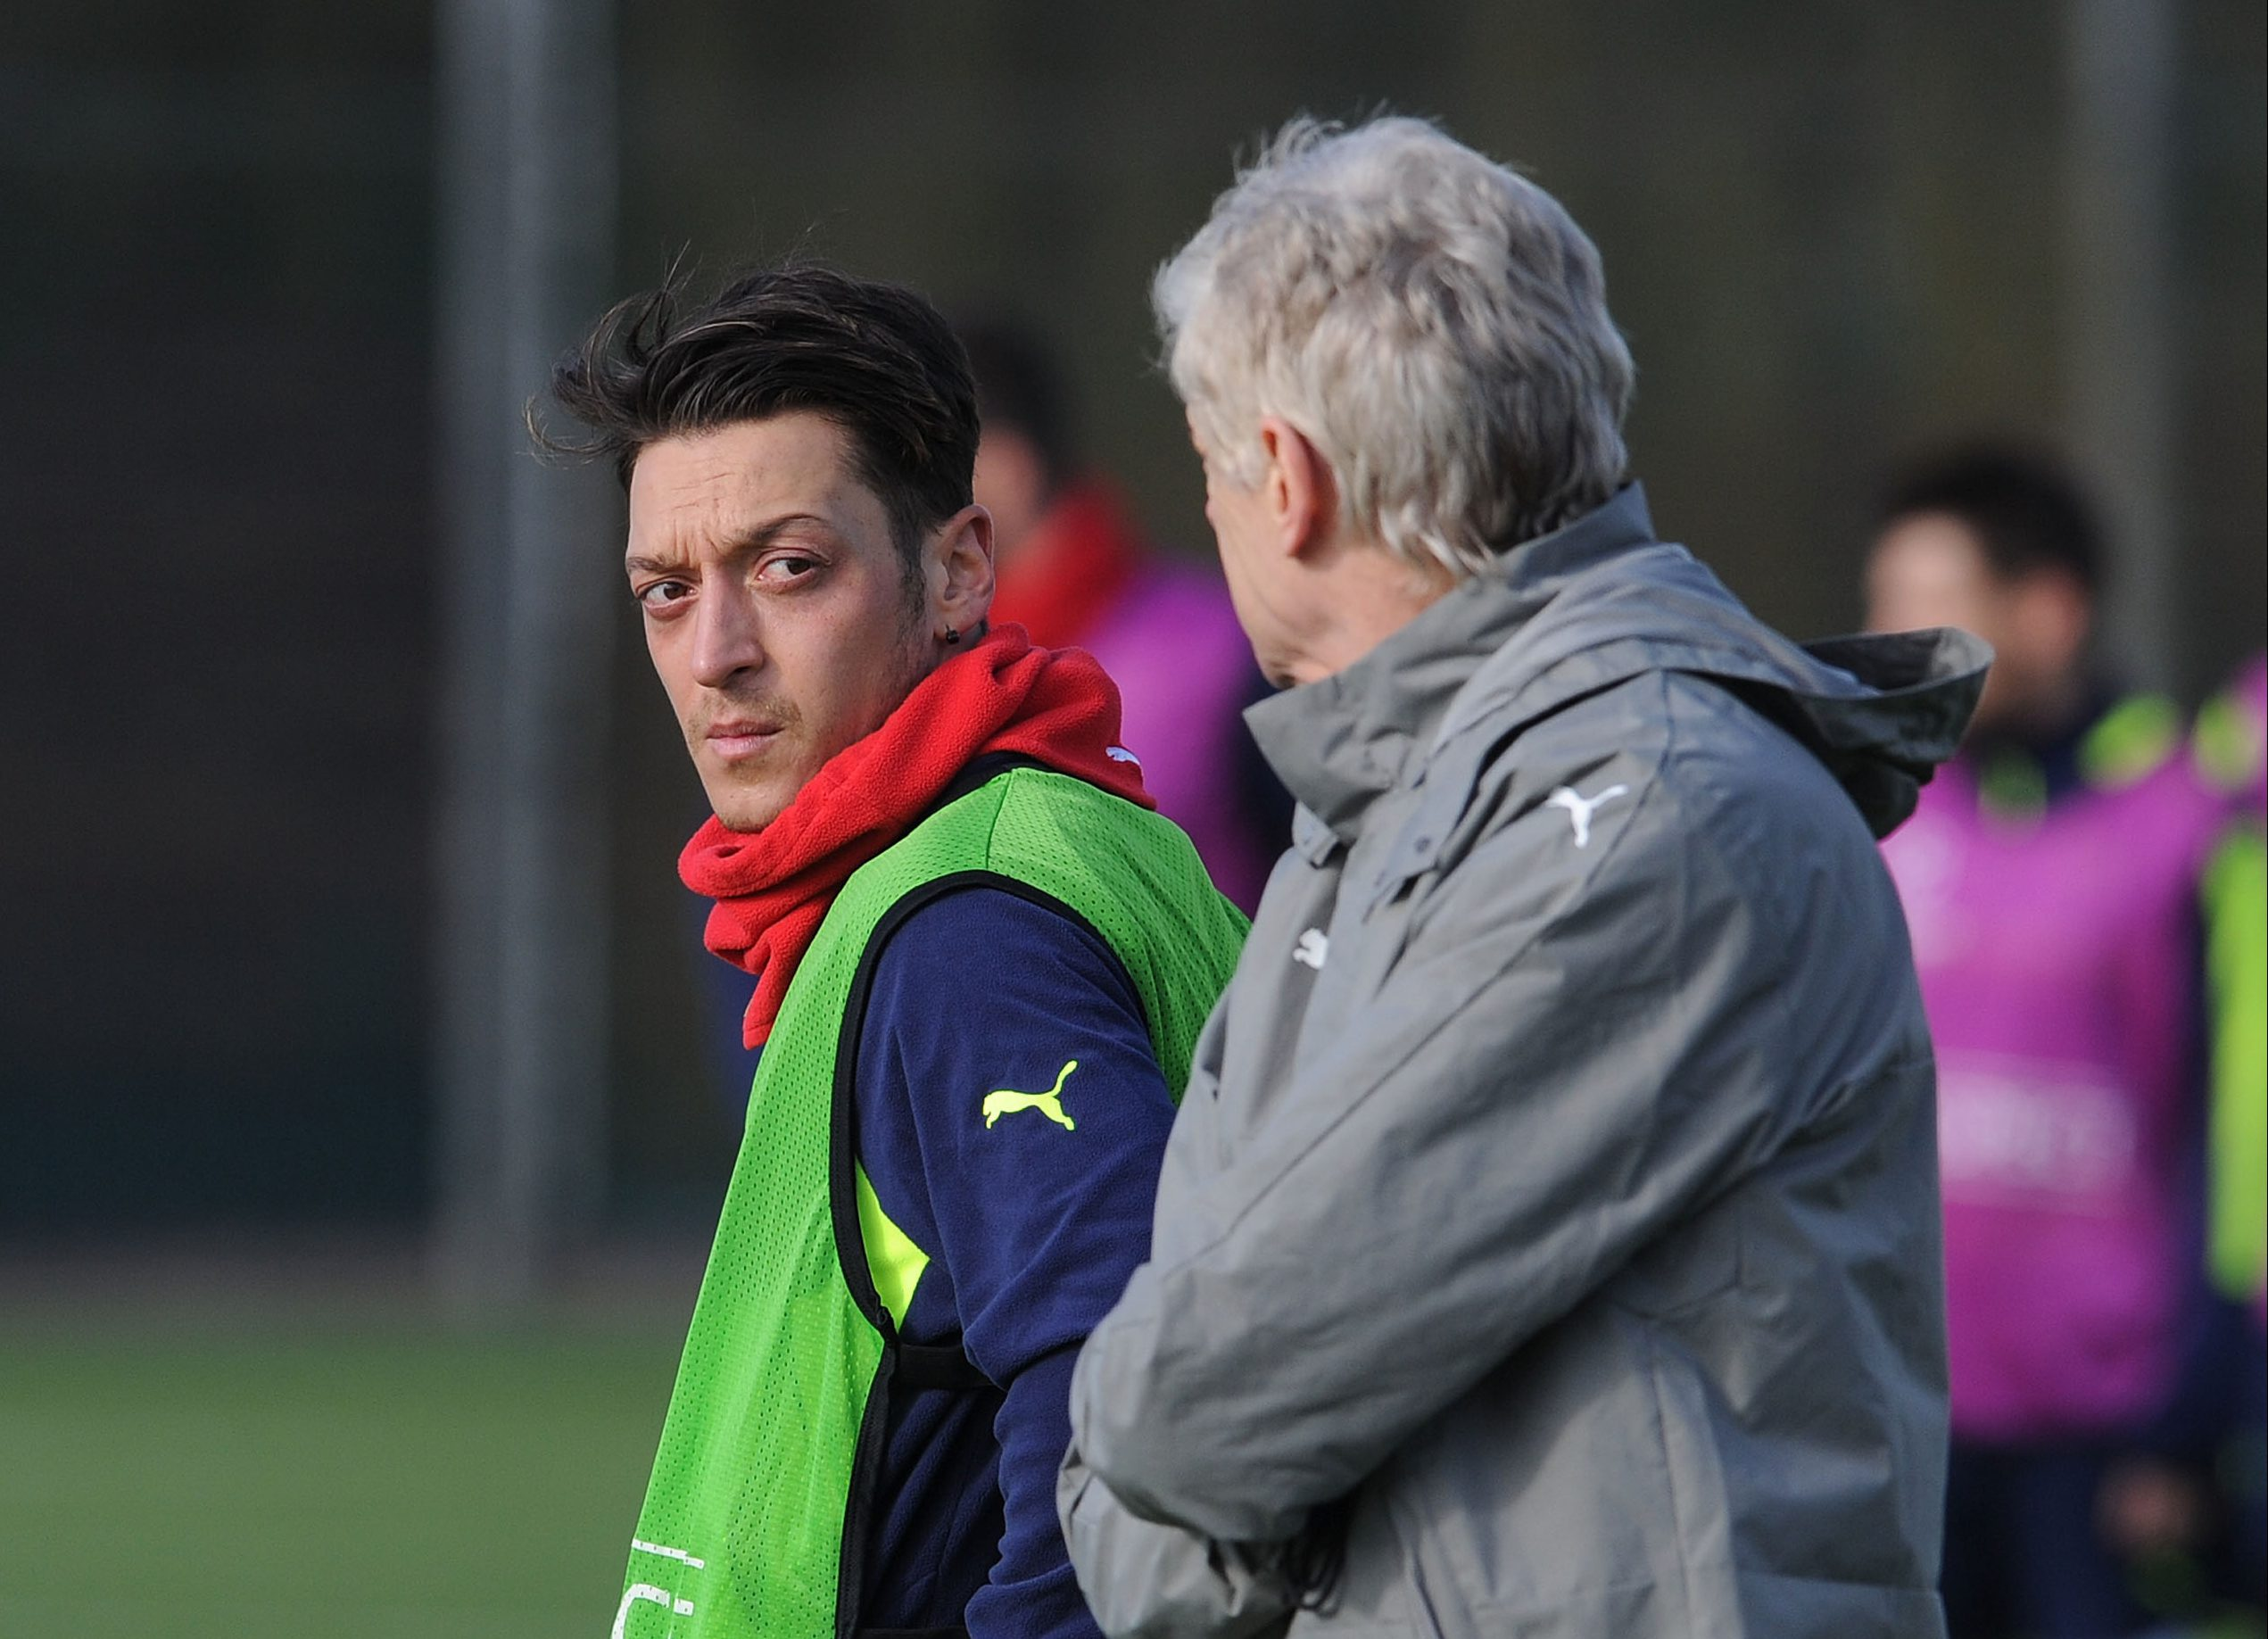 ST ALBANS, ENGLAND - FEBRUARY 14: Mesut Ozil and Arsene Wenger the Arsenal Manager during the Arsenal Training Session at London Colney on February 14, 2017 in St Albans, England.  (Photo by David Price/Arsenal FC via Getty Images)